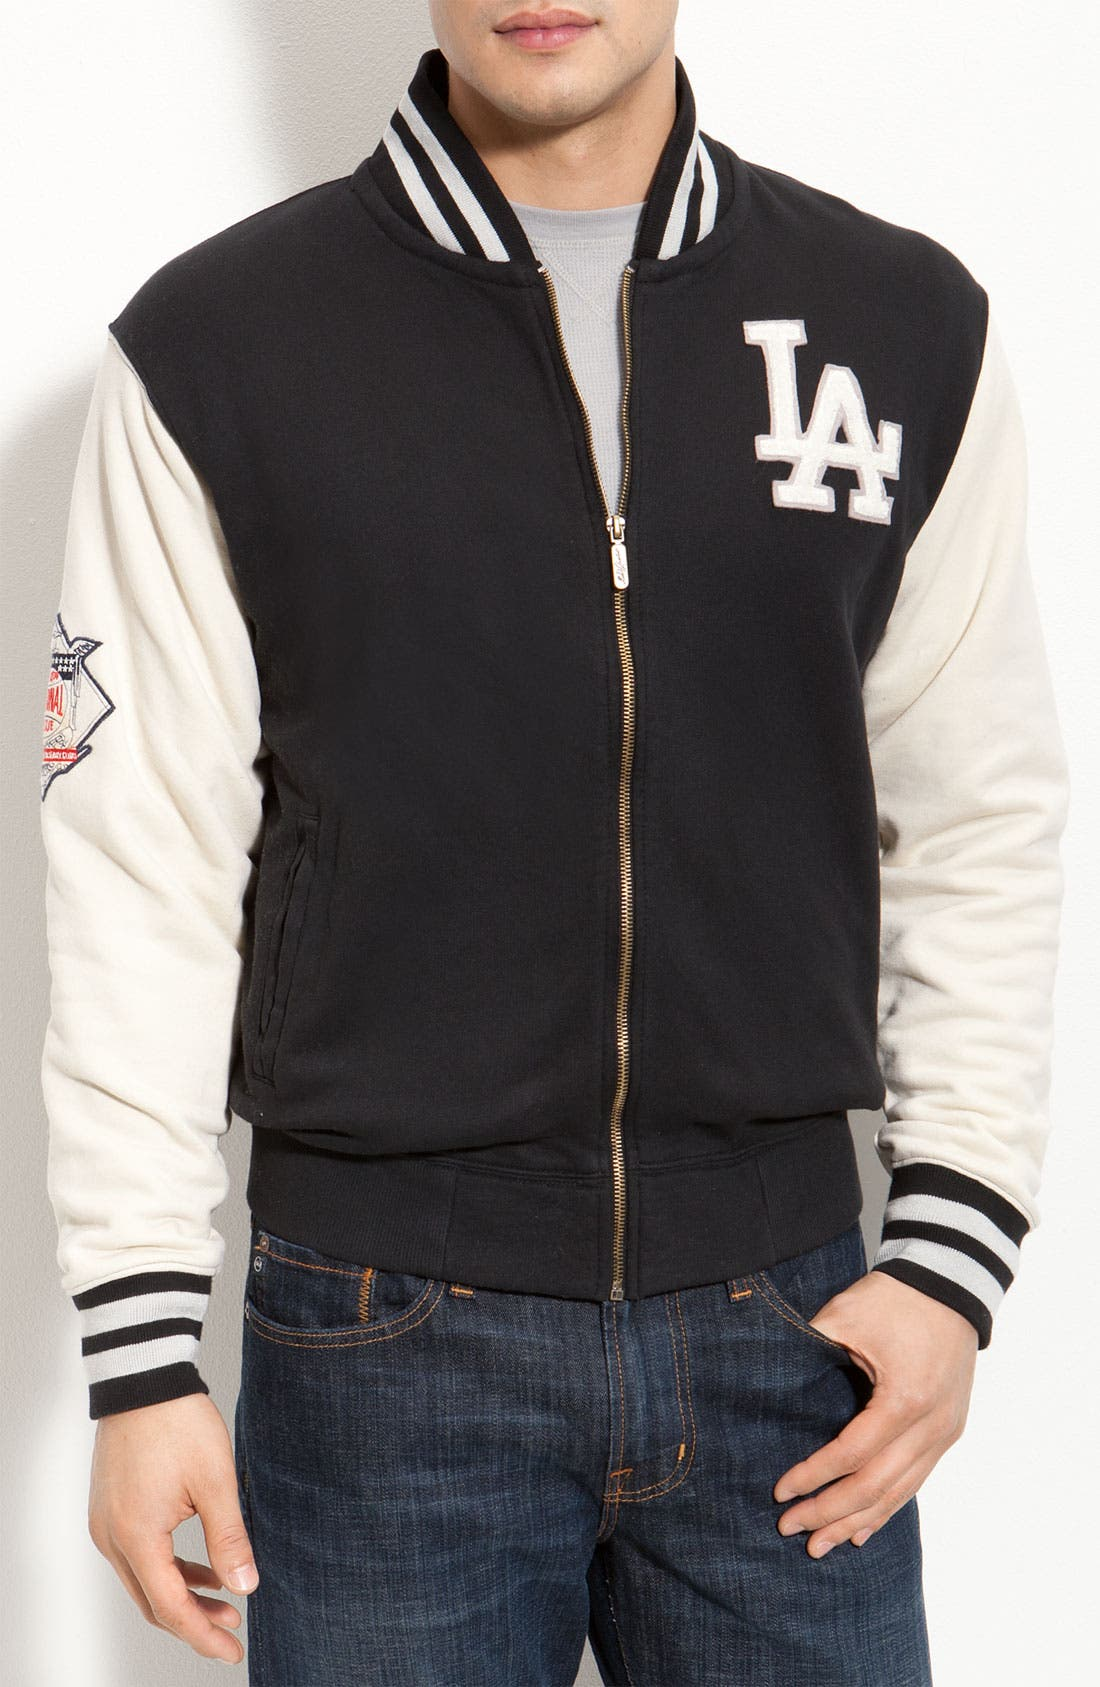 Alternate Image 1 Selected - Red Jacket 'Los Angeles Dodgers - Homeroom' Jacket